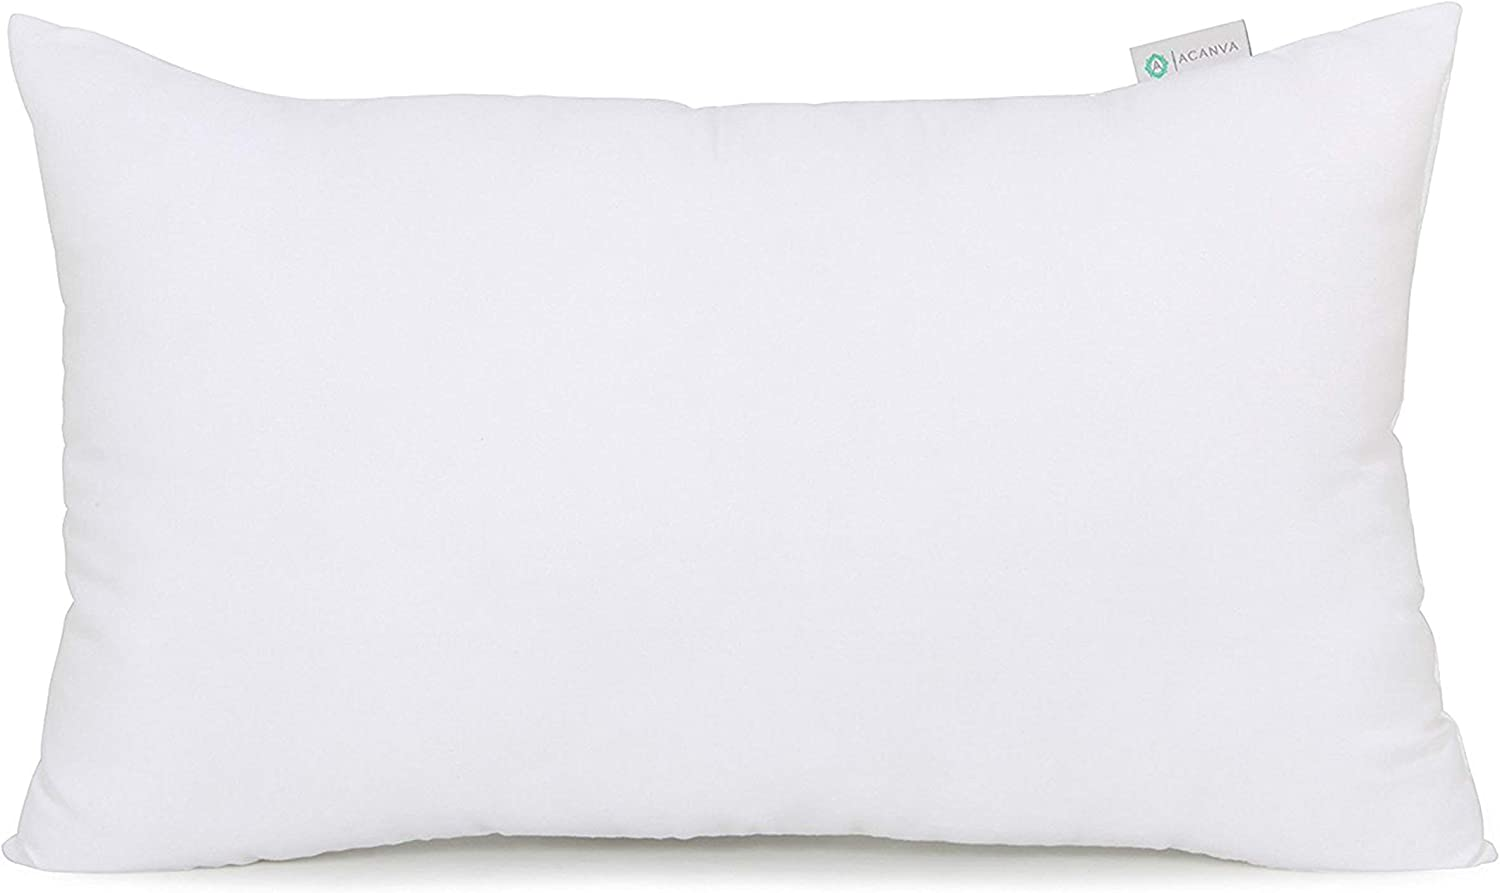 Acanva Square Basic Poly Pillow Insert 22 L x 22 W White 2 Pack